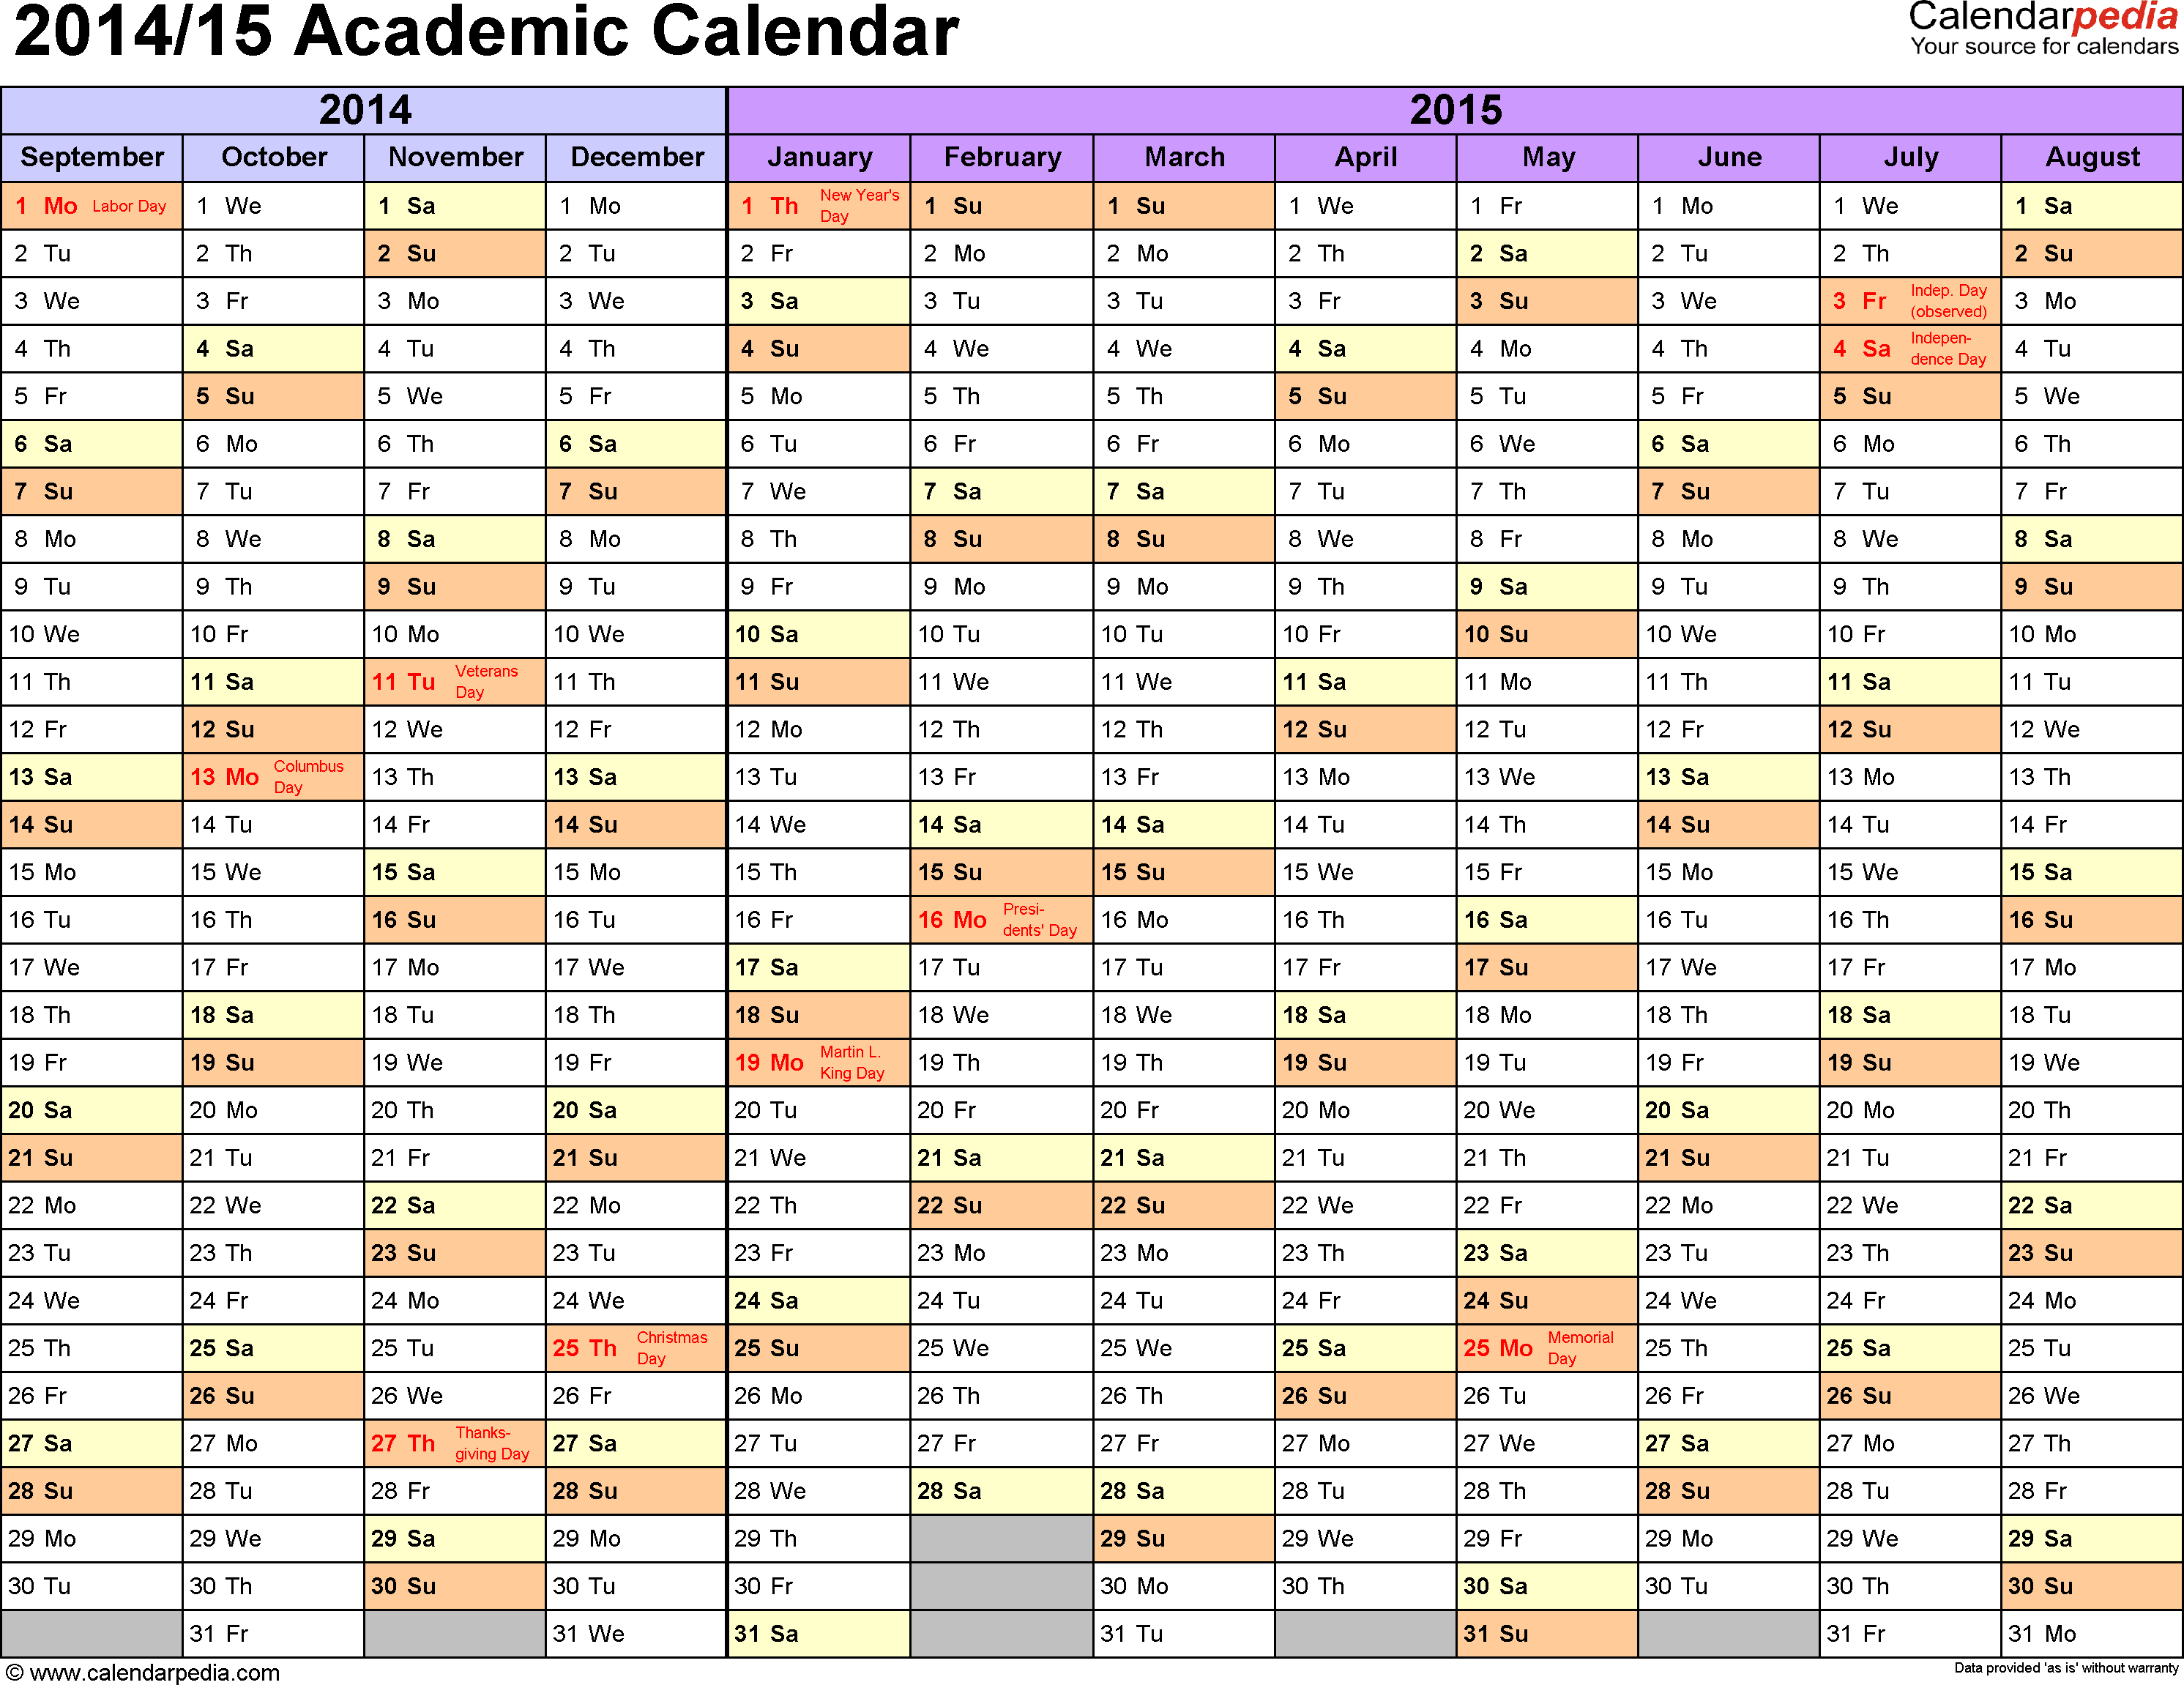 Download Template 1: Academic calendar 2014/15 in PDF format, landscape, 1 page